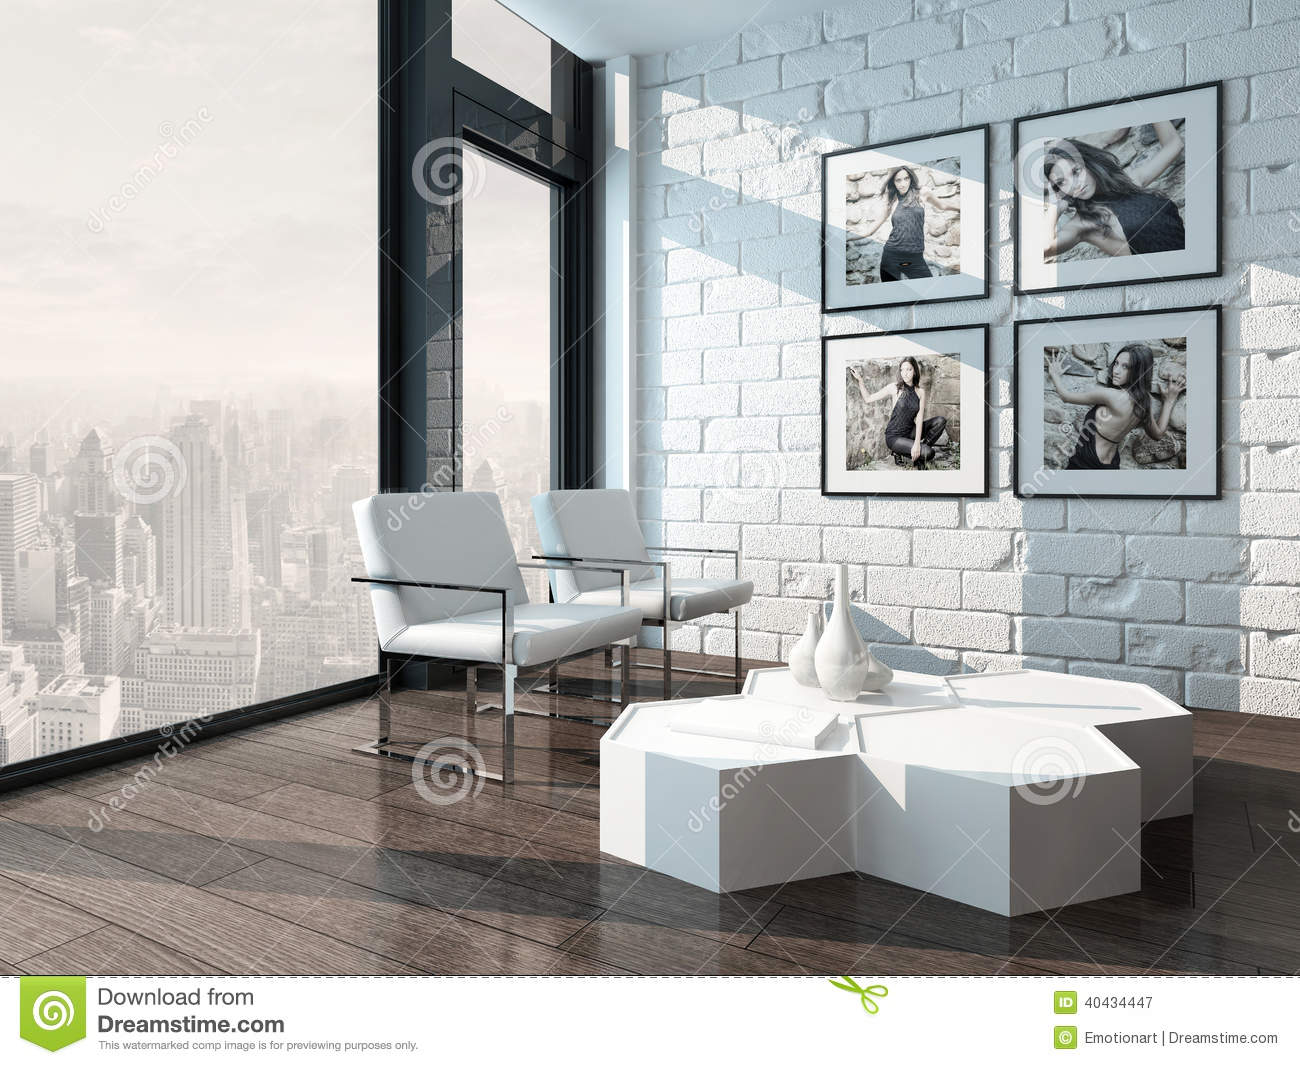 mountain tile from white brick wall london tiles roomset interior p